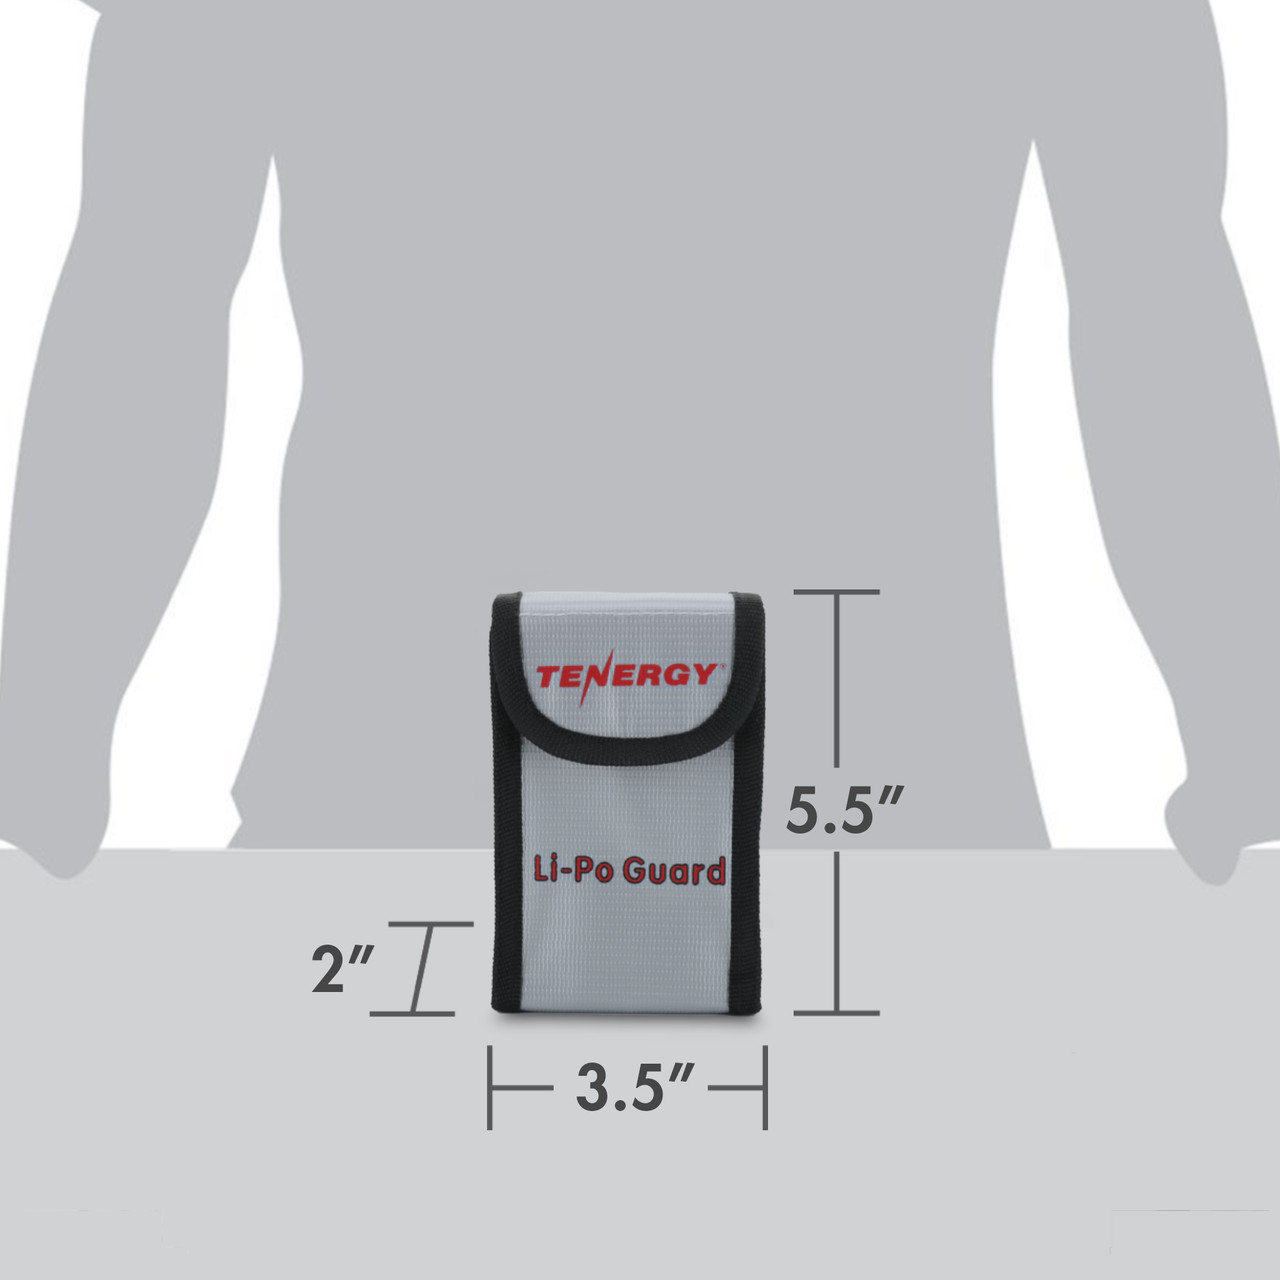 Tenergy Pack of 2, Fireproof and explosion-proof Tenergy lipo safe bag, size: 5.5x3.5x2 inches (140x90x55mm)